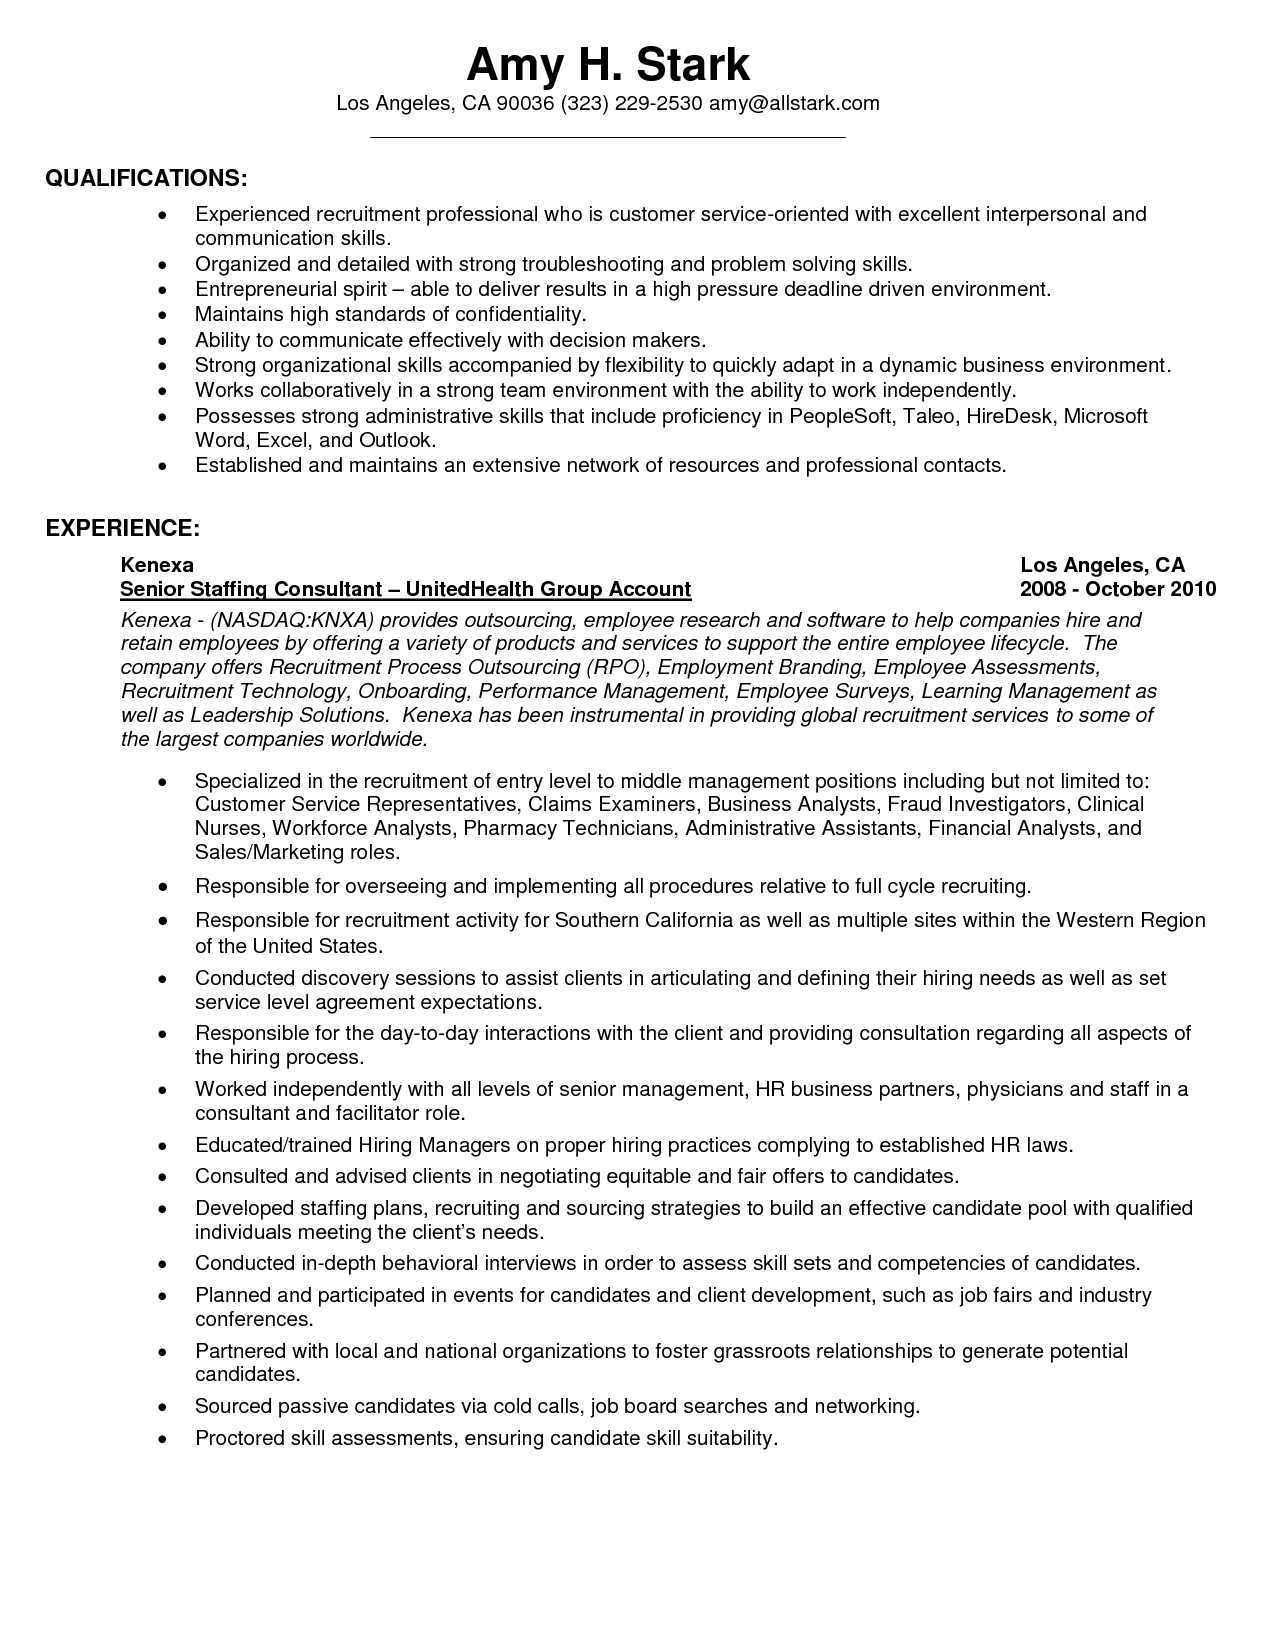 Excellent Customer Service Skills Resume | Sample Resume Center ...